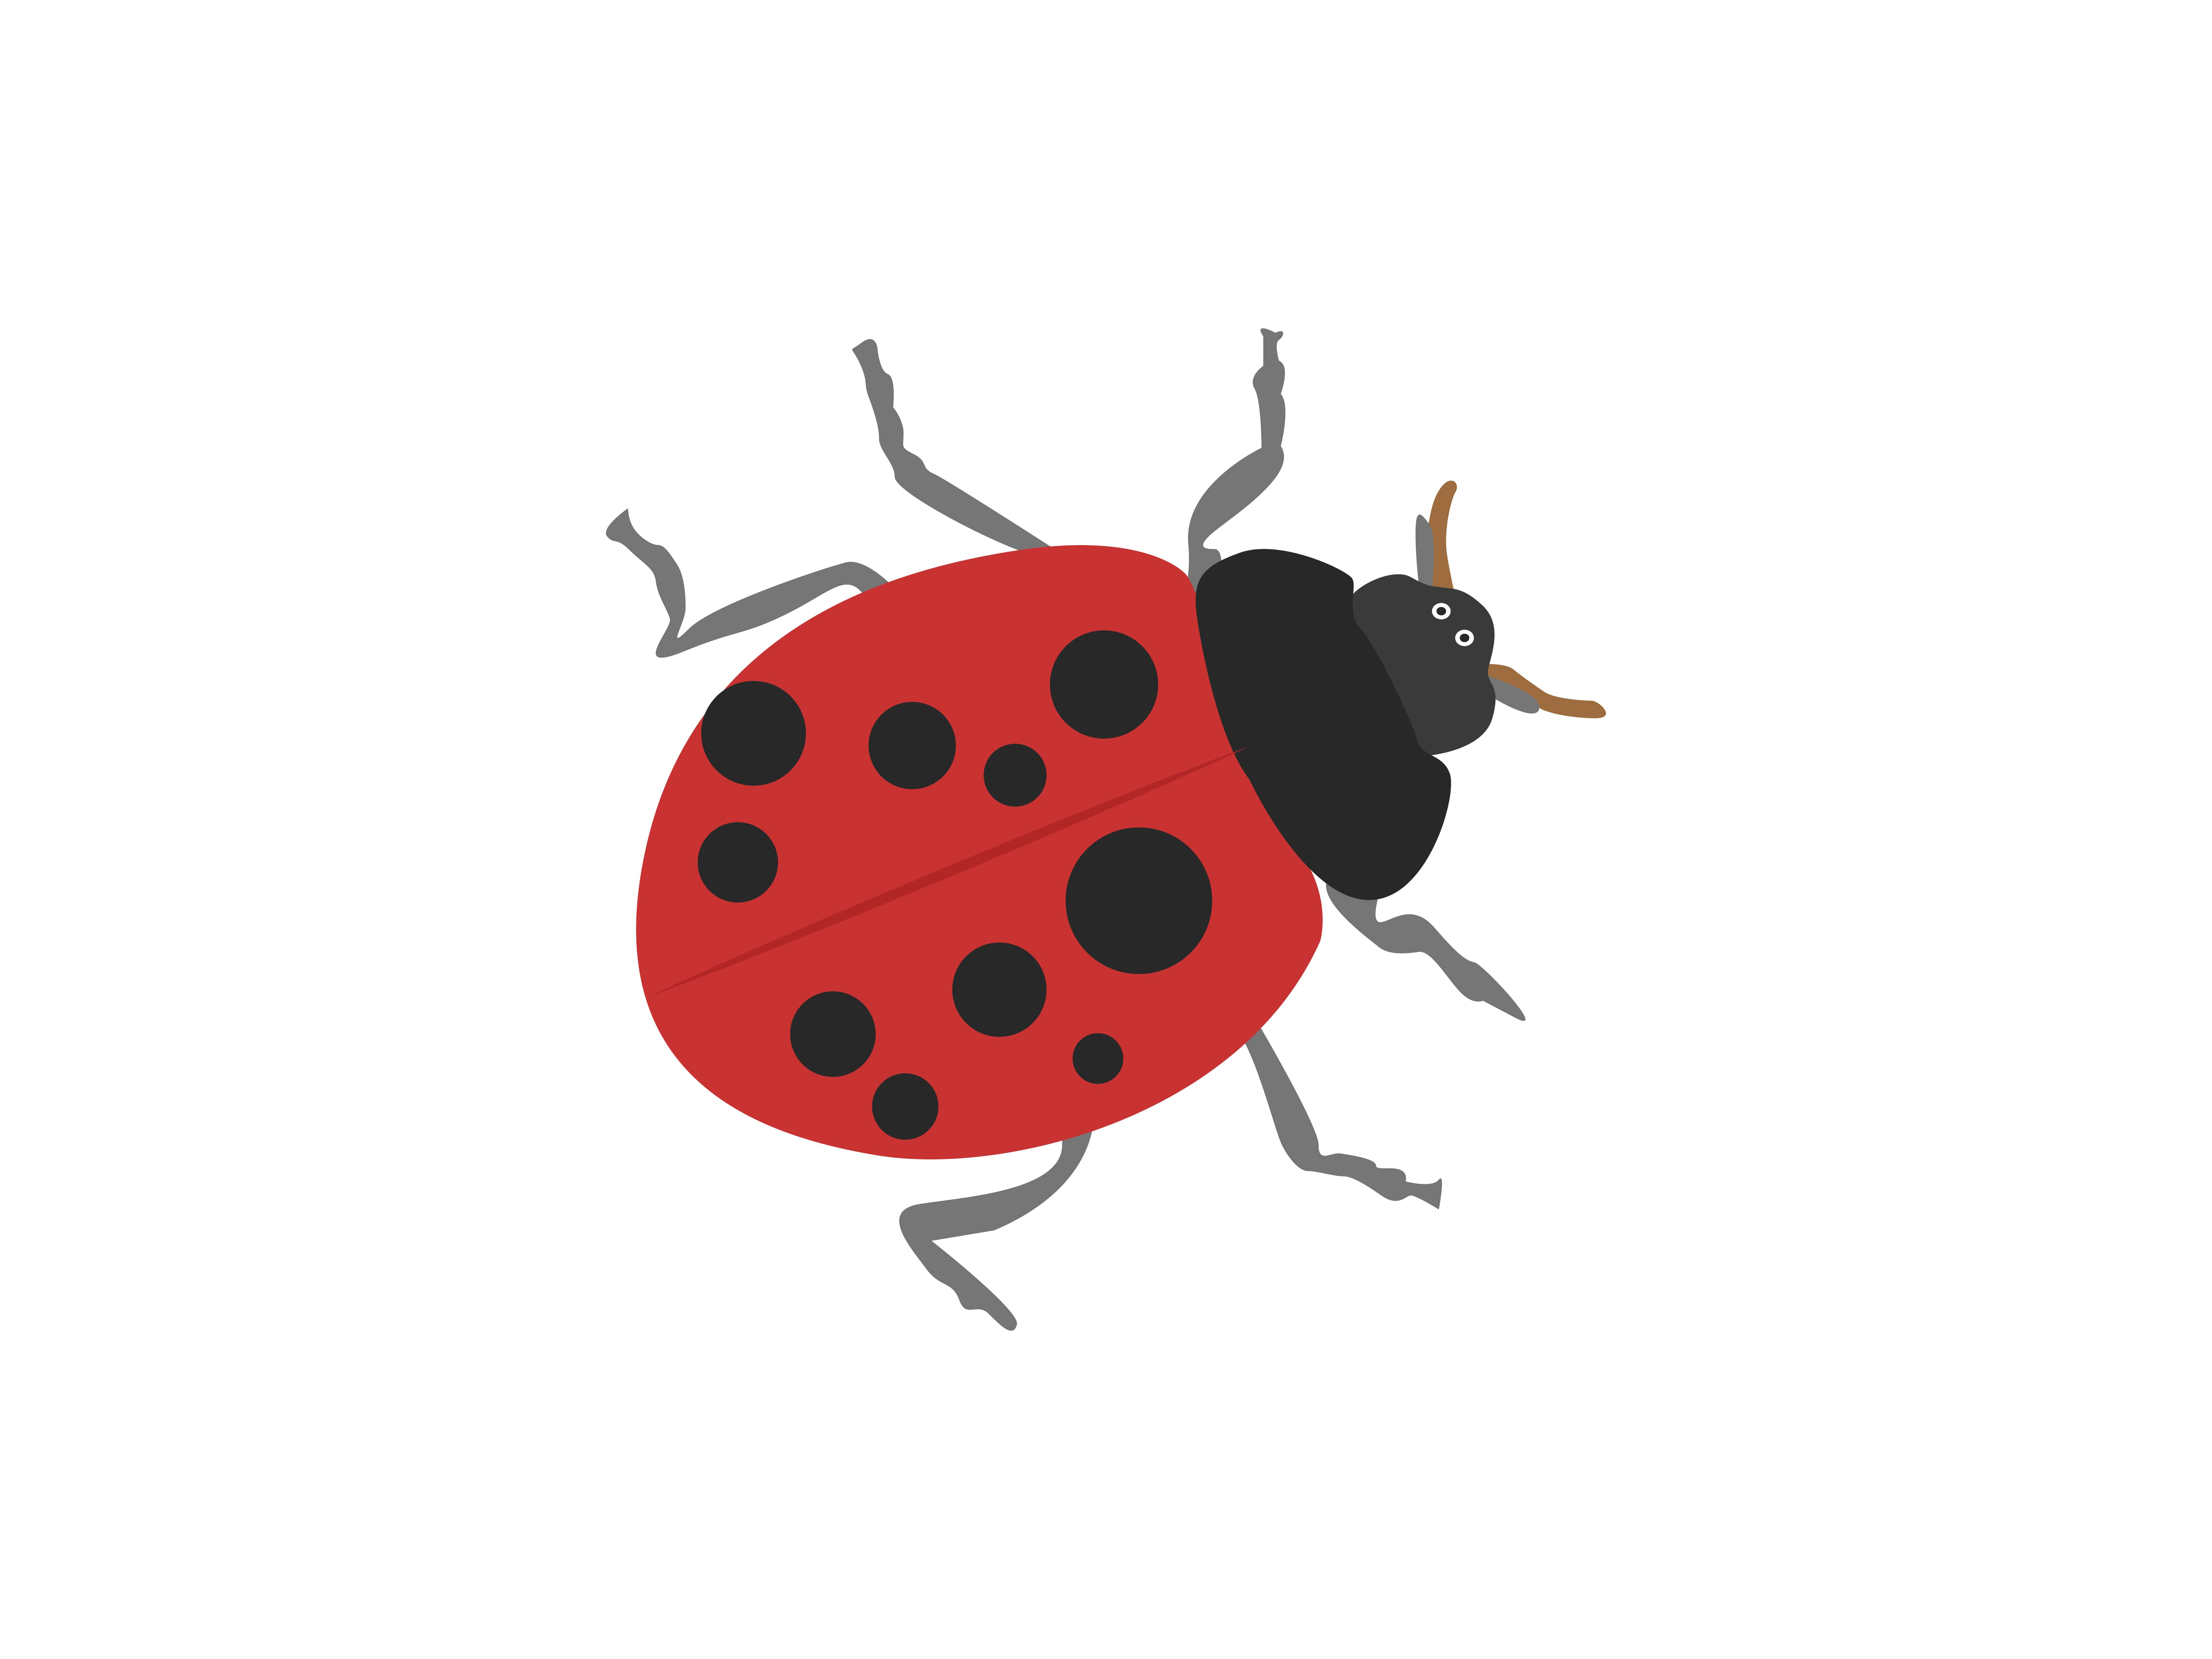 Download Free Coccinellidae Animal Graphic By Archshape Creative Fabrica for Cricut Explore, Silhouette and other cutting machines.